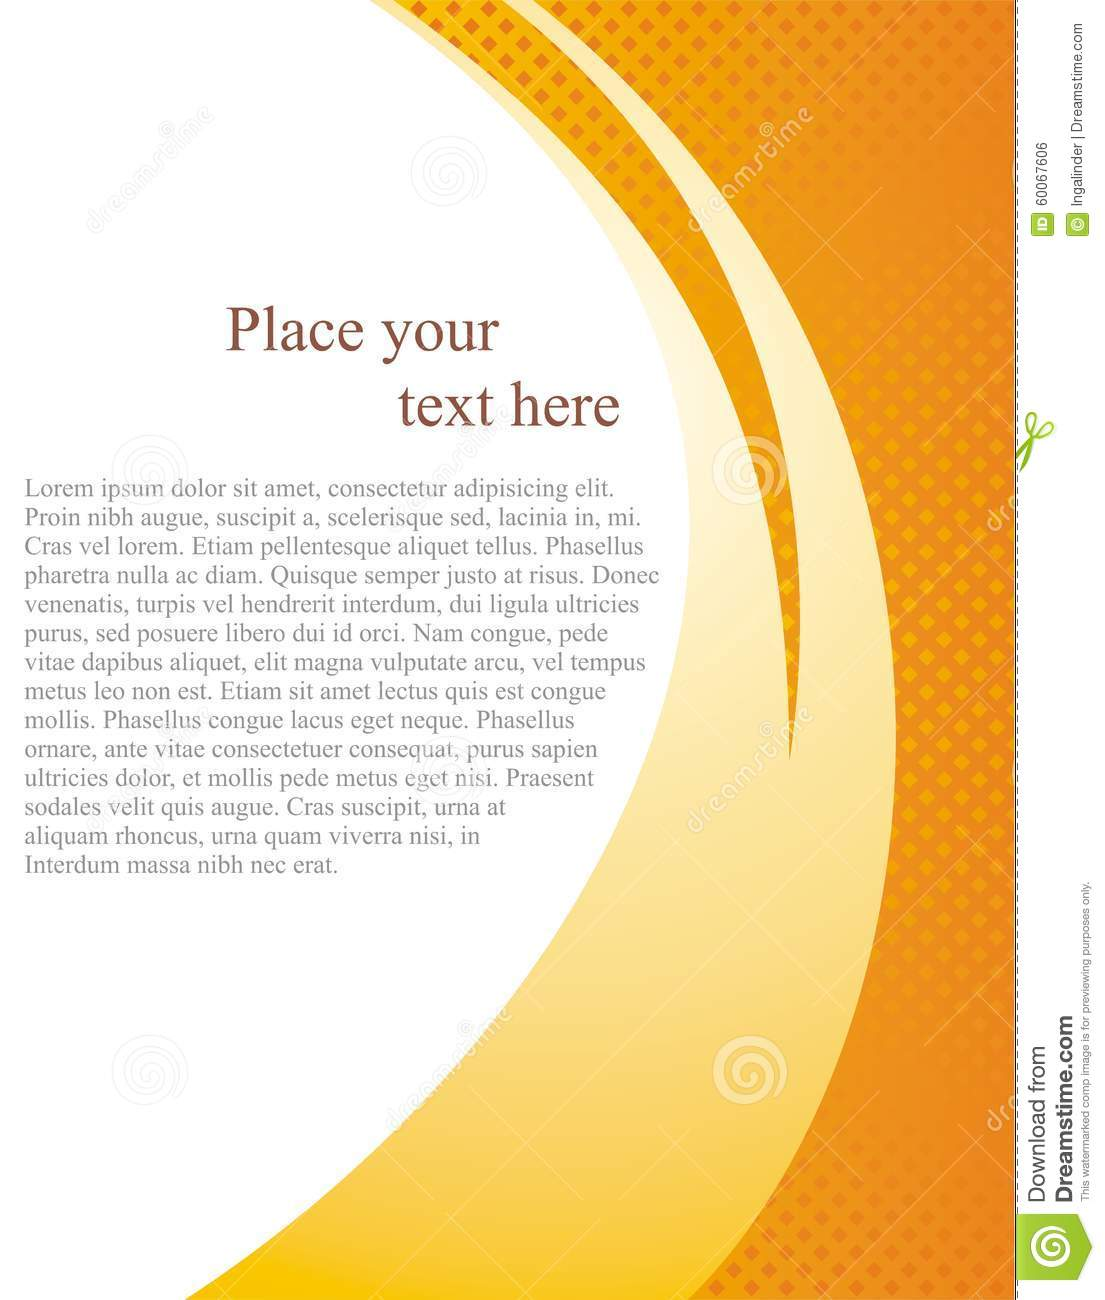 Document Page Template With White Background And Abstract Orange Wave